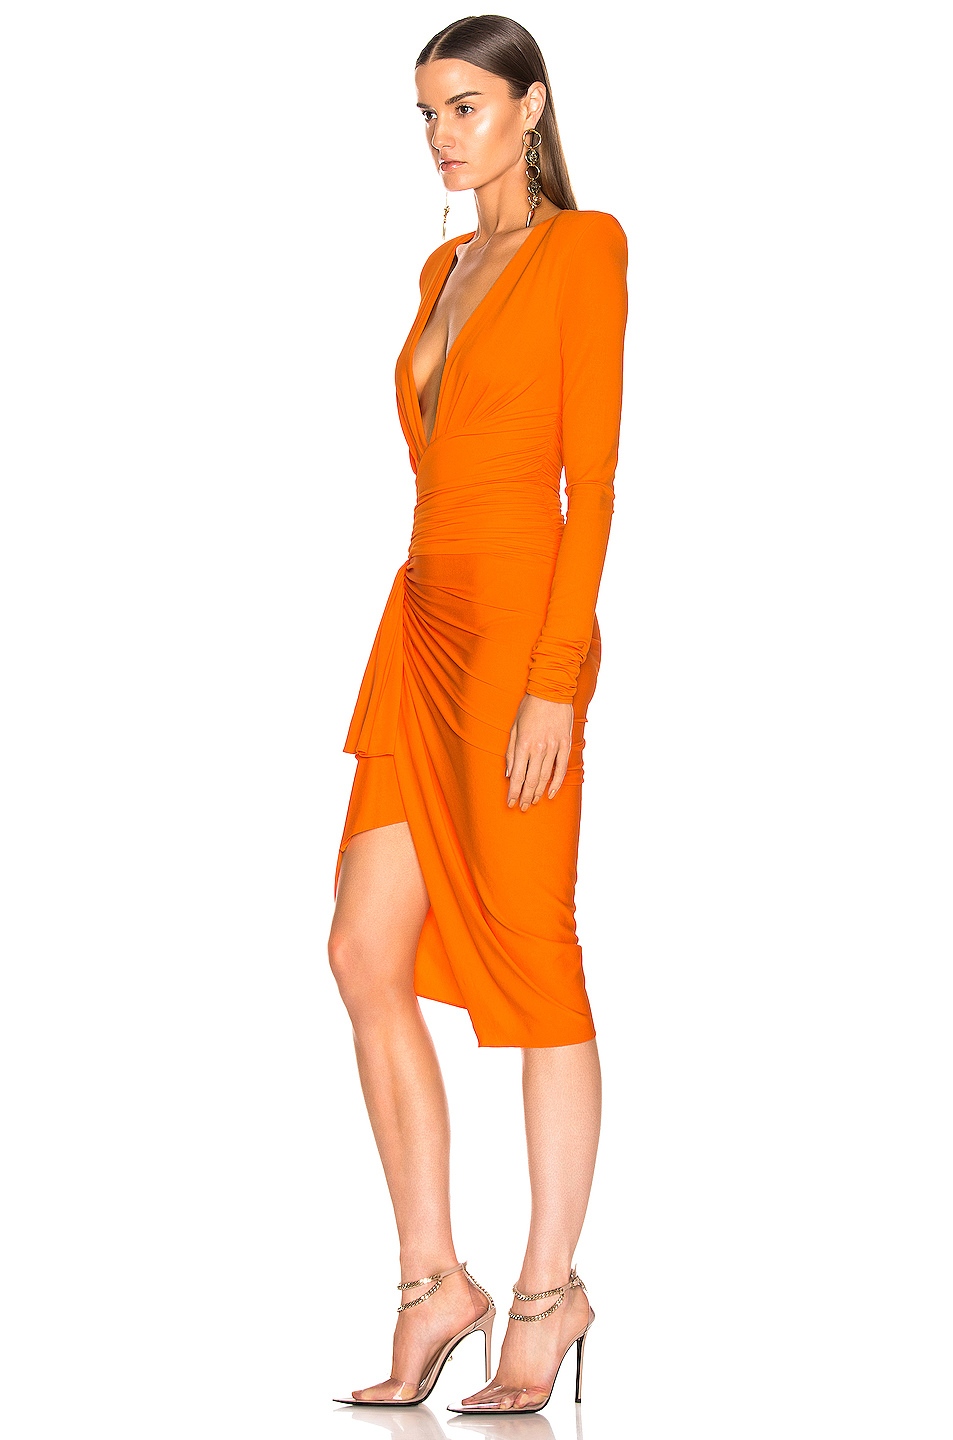 413490db Buy Original Alexandre Vauthier Jersey Ruched Mini Dress at ...